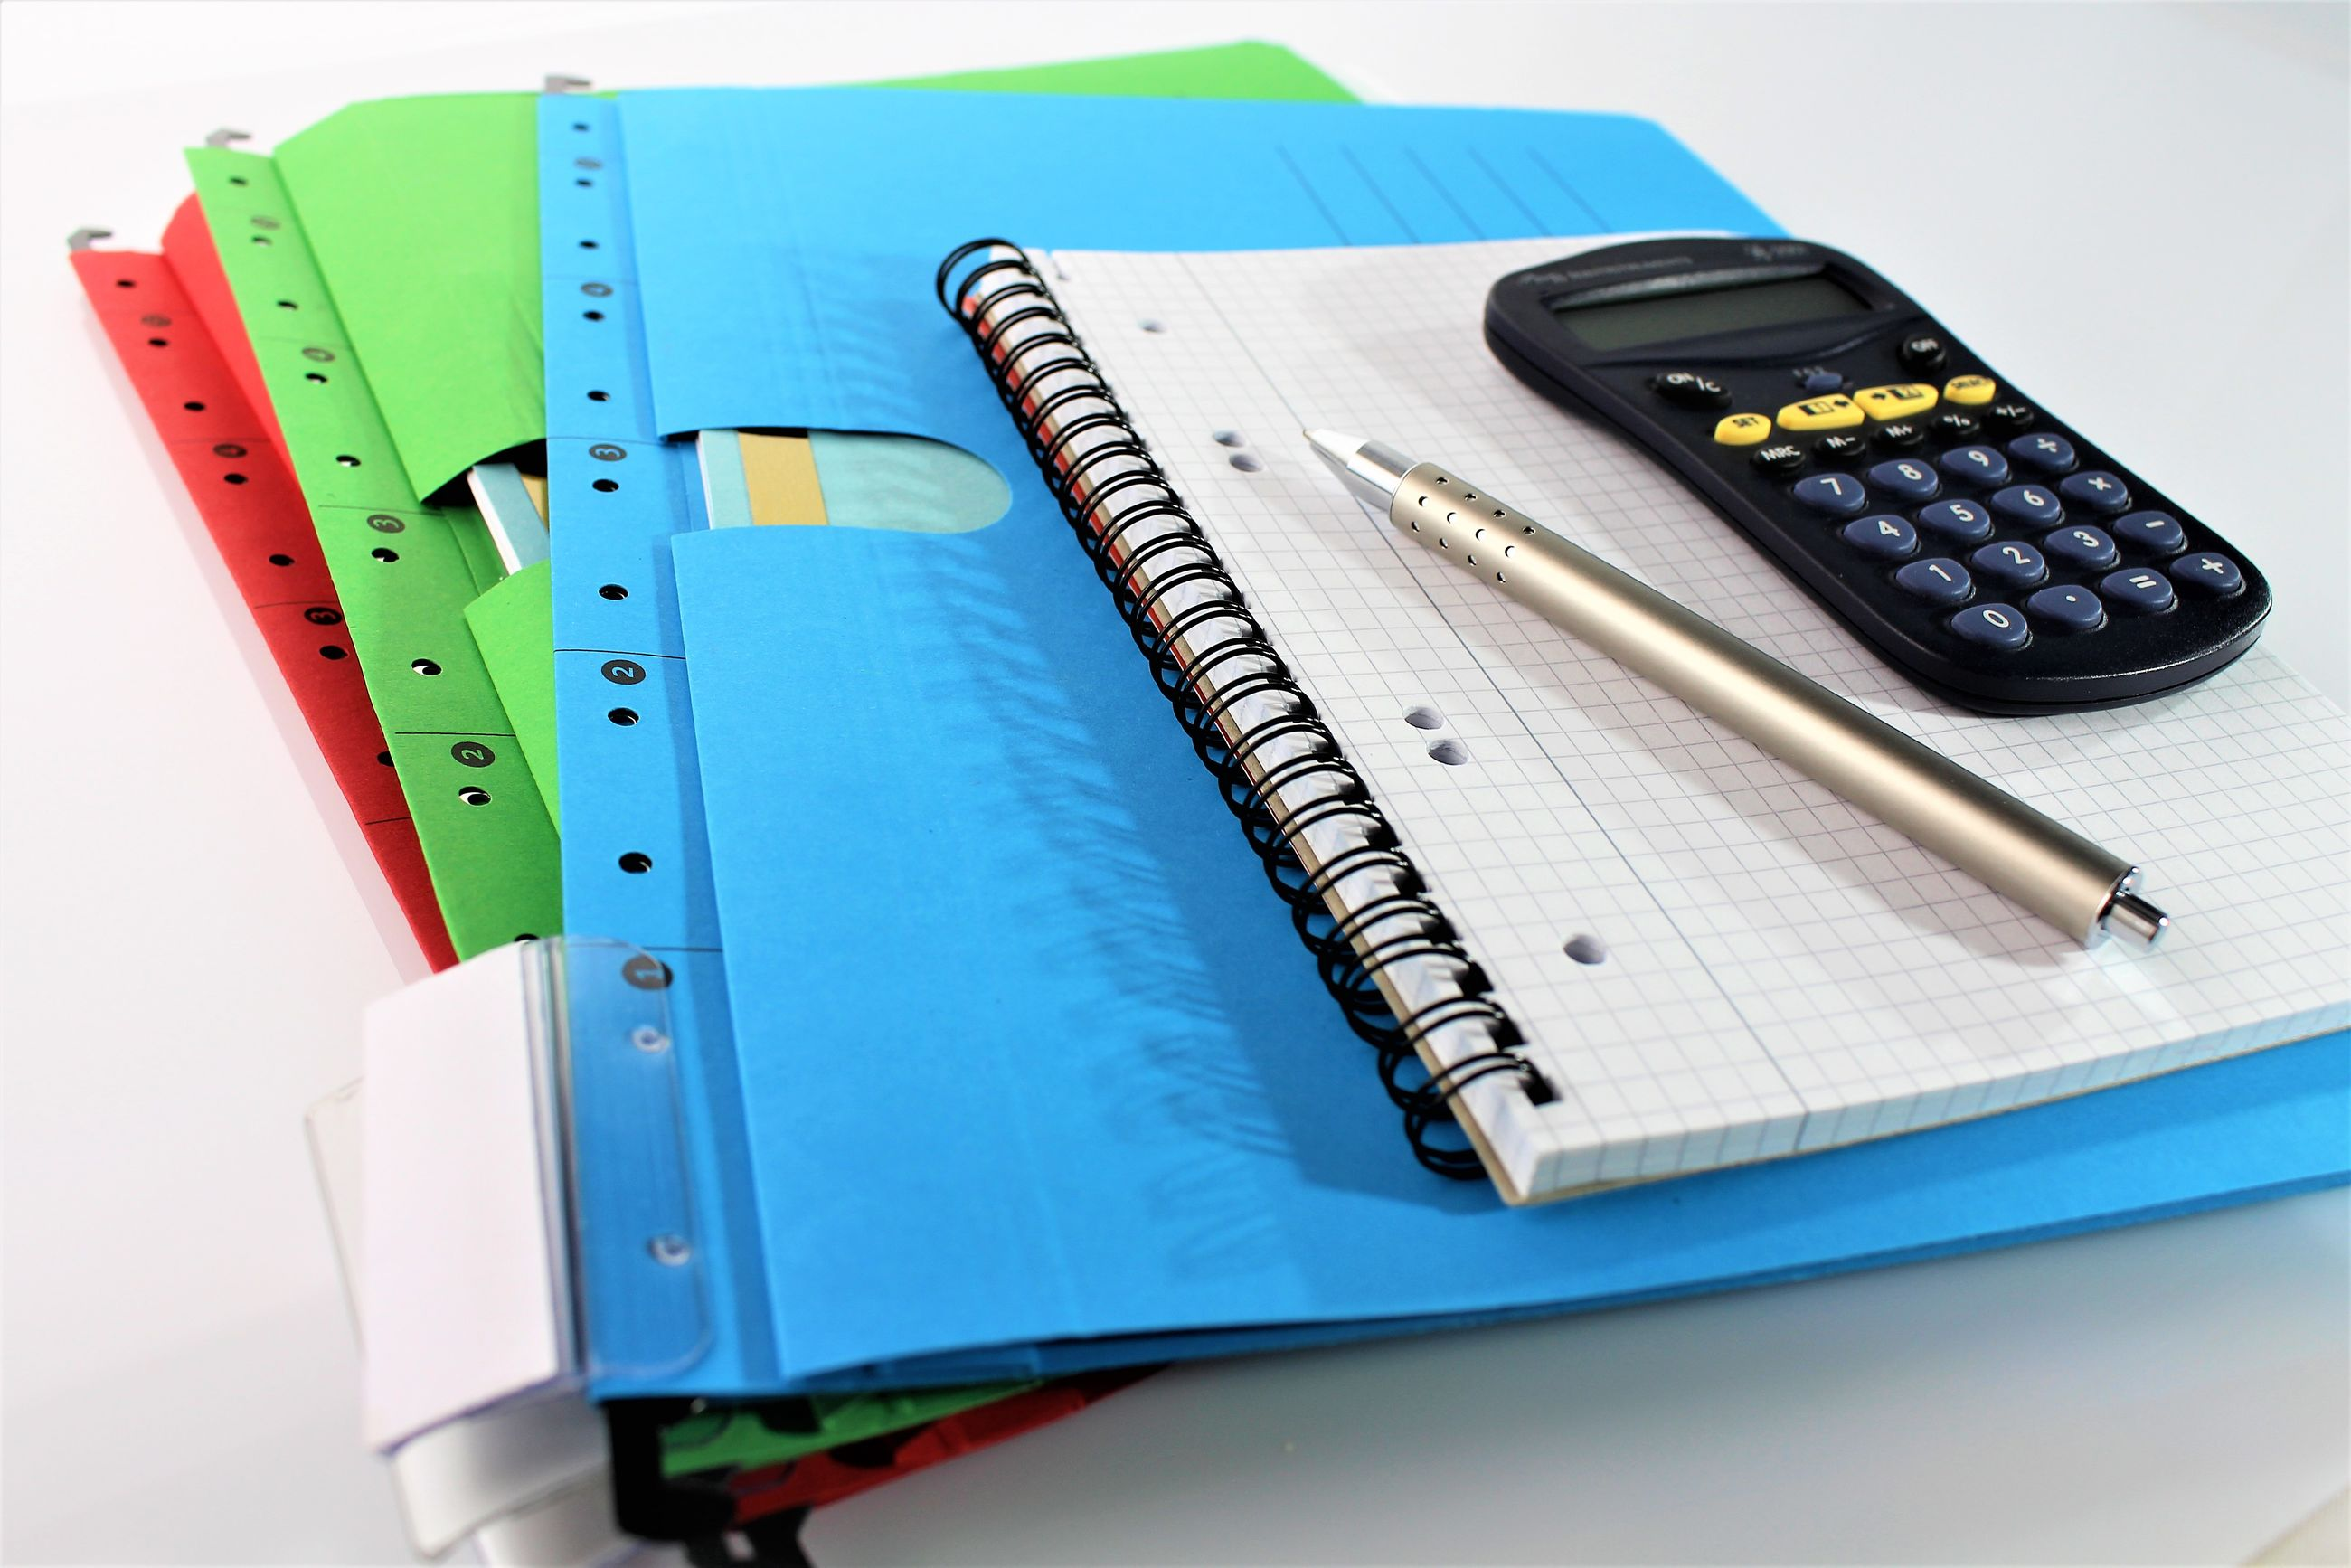 Close-up of calculator with books and pen over white background